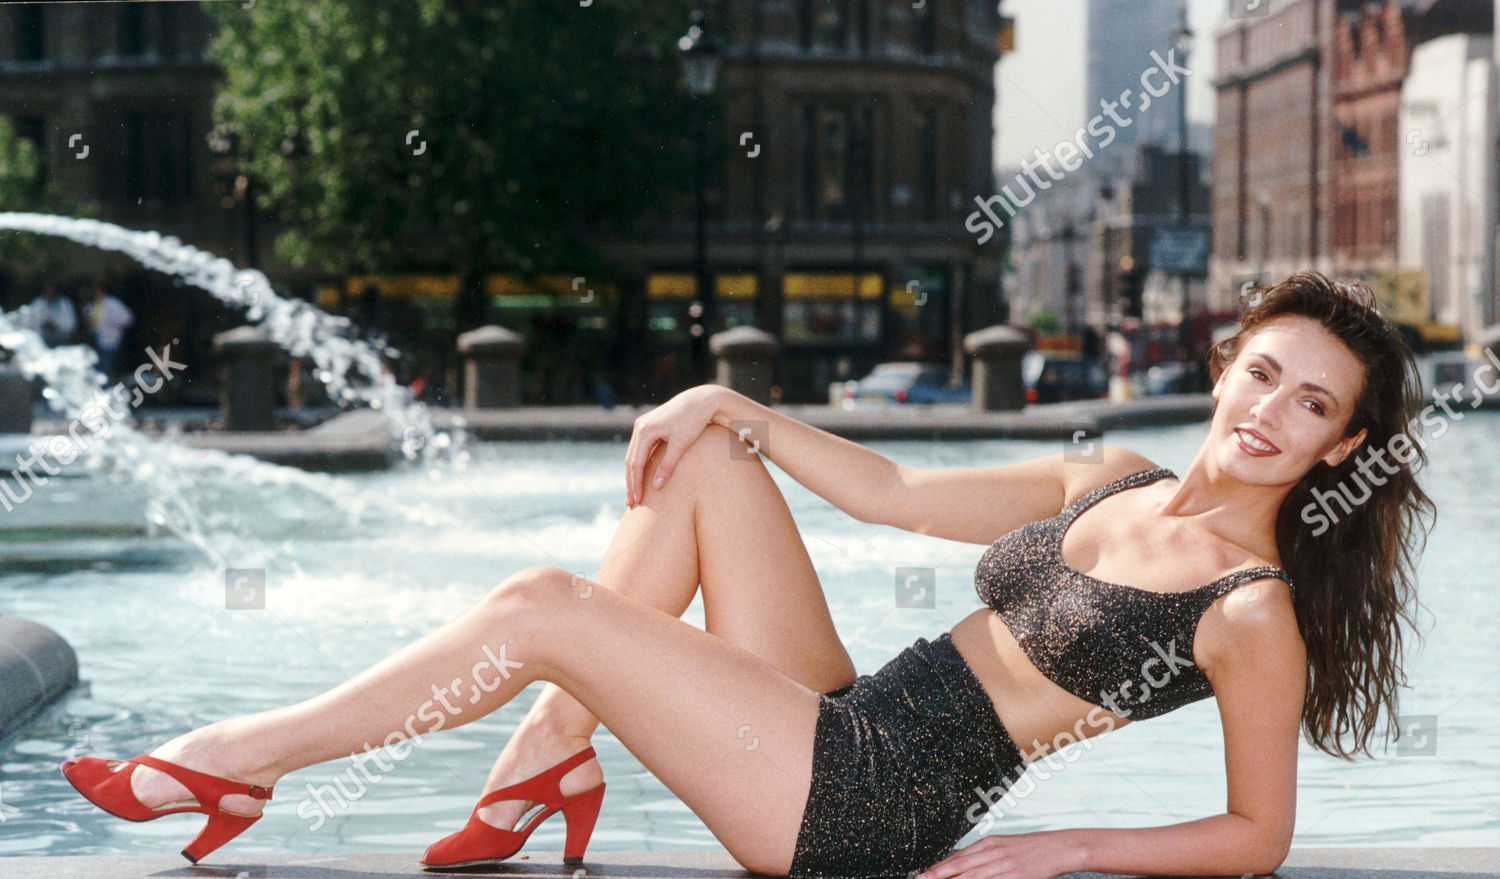 London Page 3 >> Former Page 3 Model Kathy Lloyd Pictured Editorial Stock